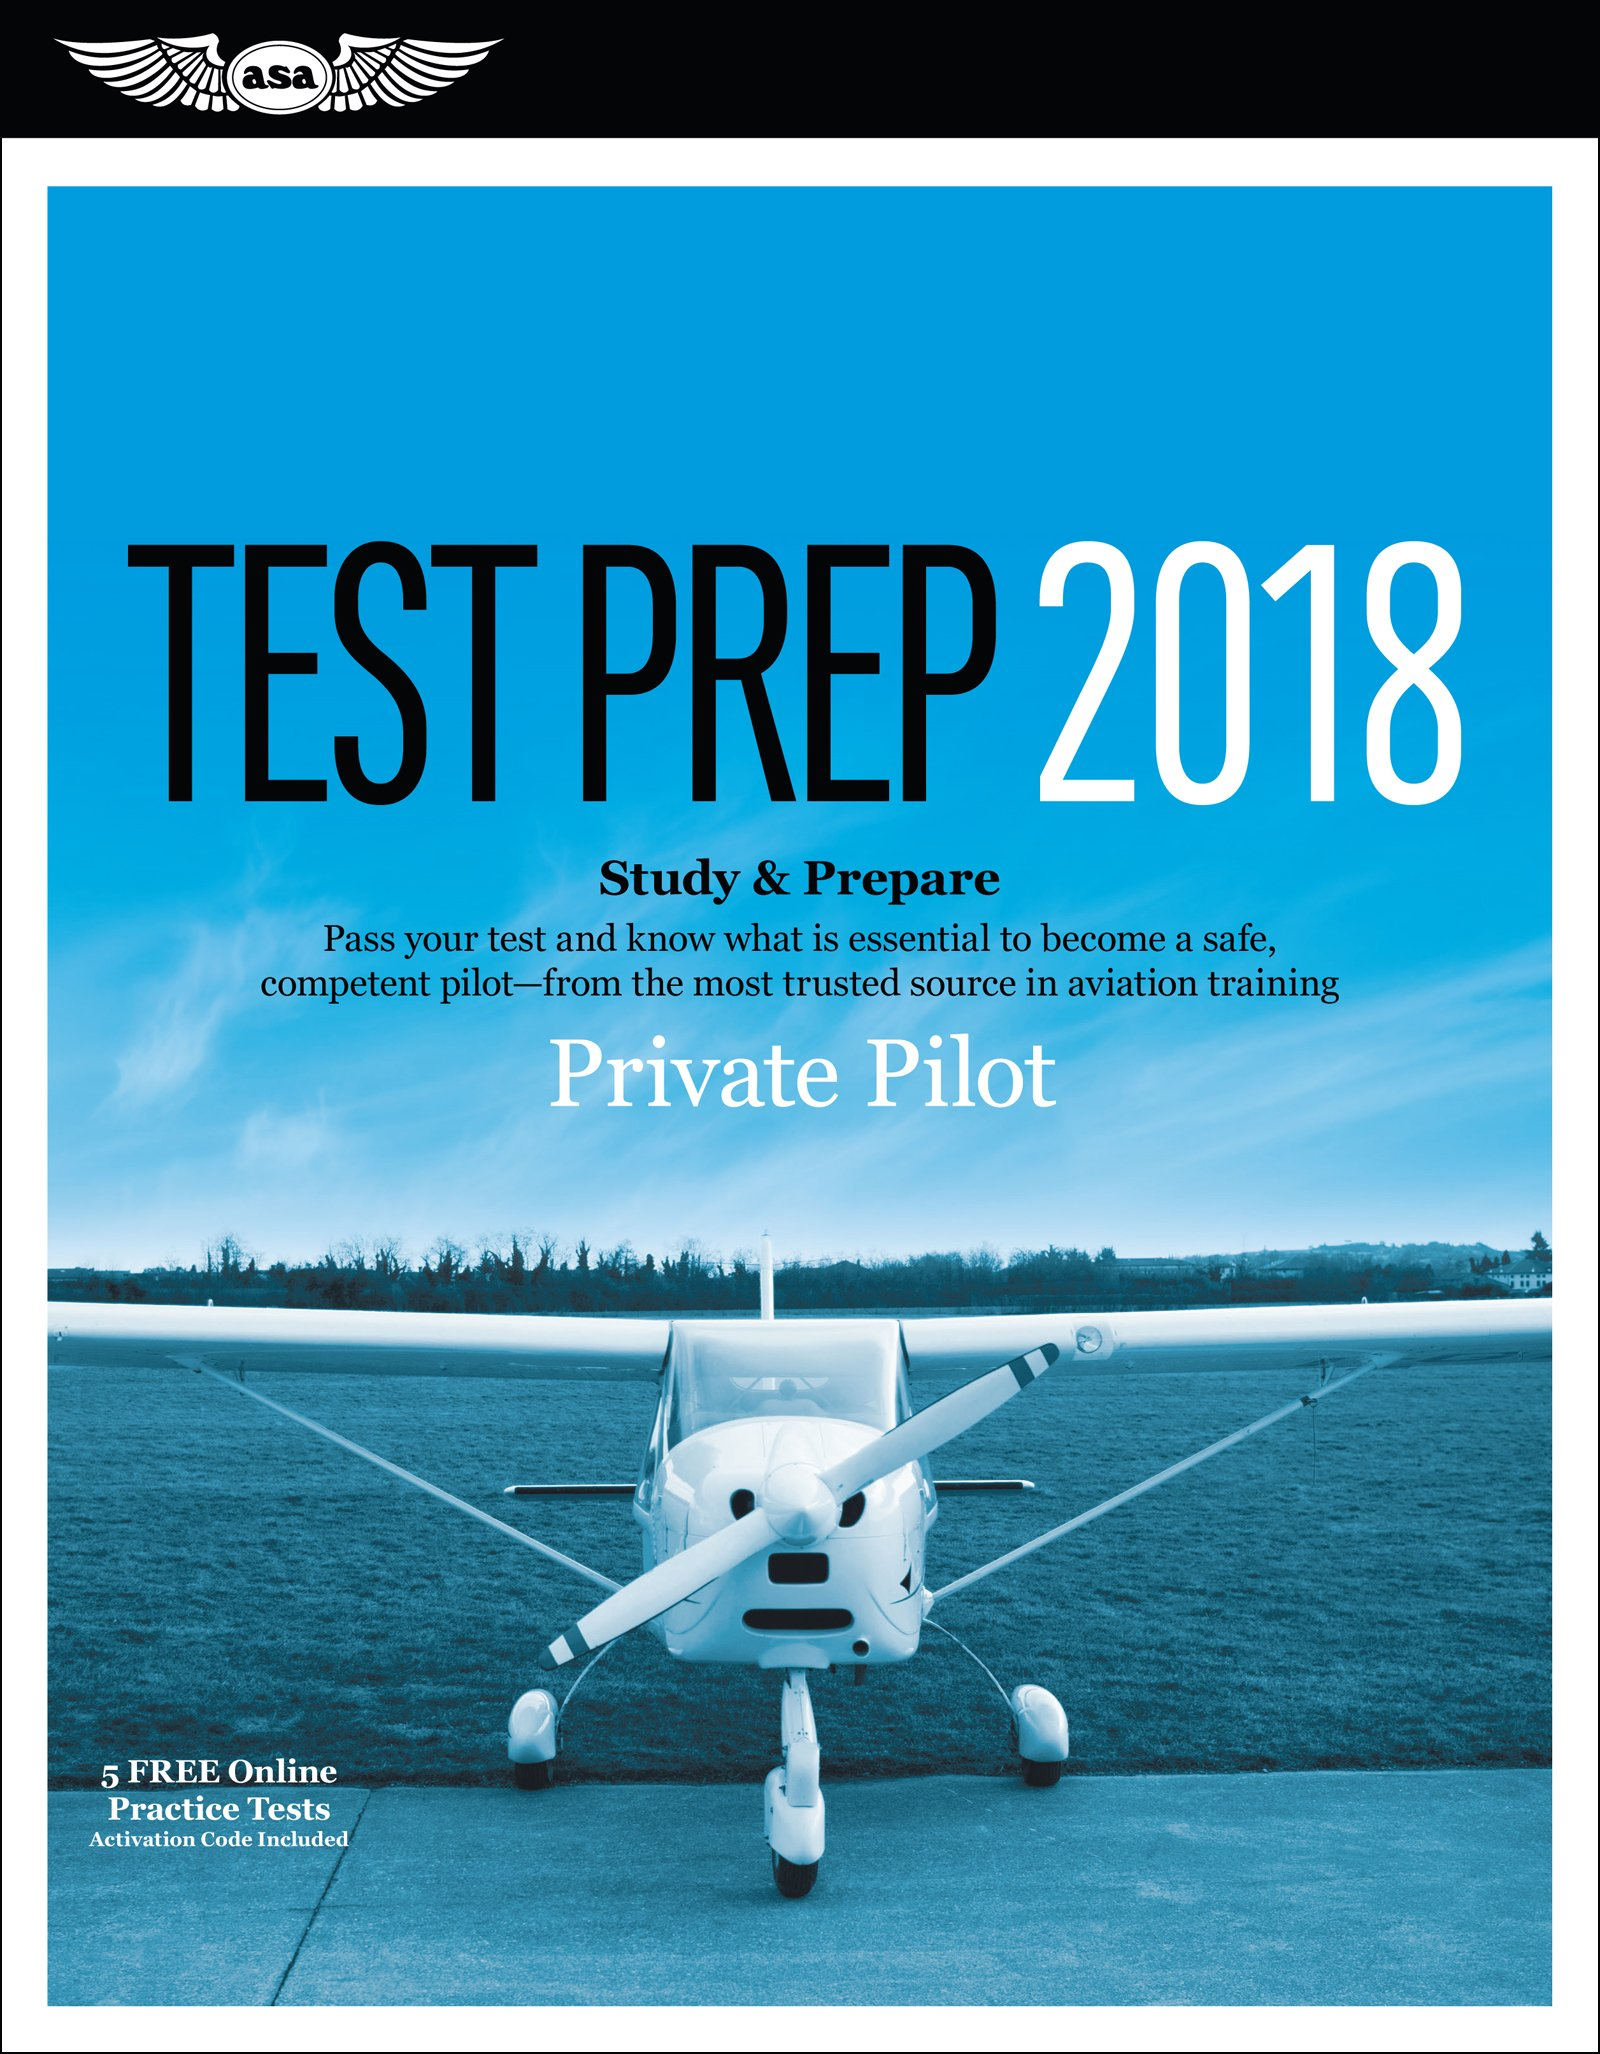 Private Pilot Test Prep 2018: Study & Prepare